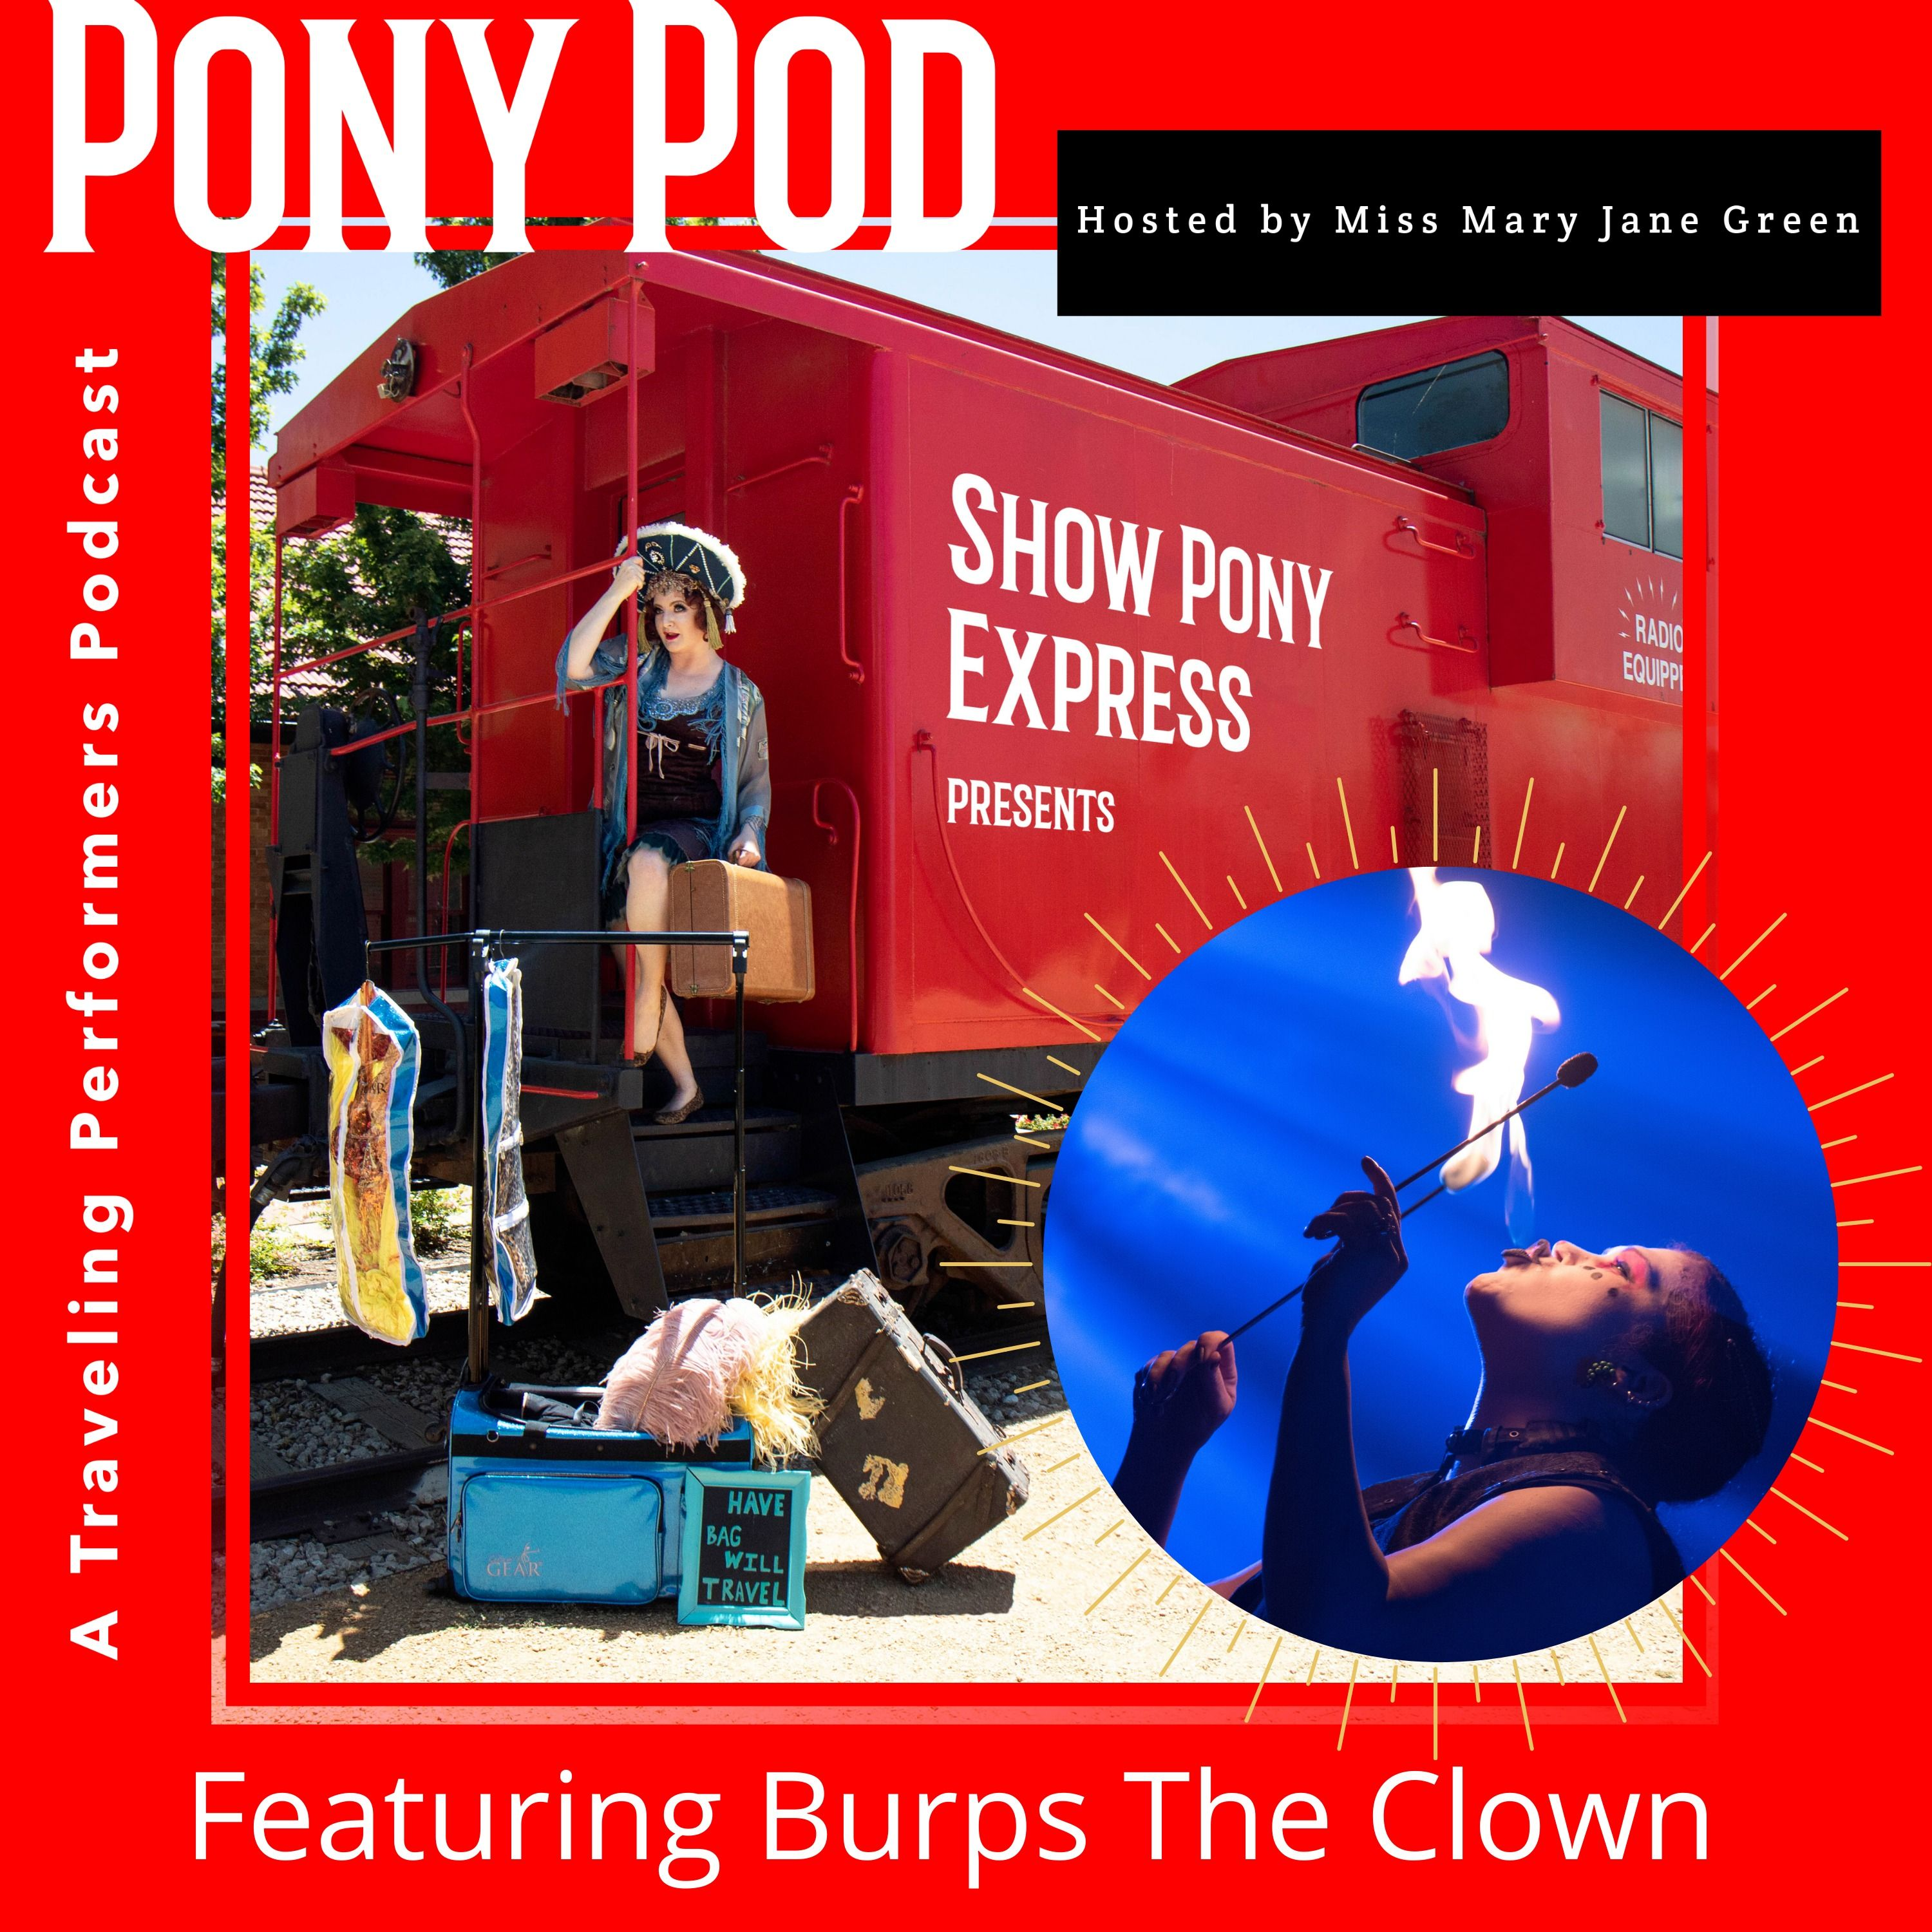 Pony Pod - A Traveling Performers Podcast featuring Burps the Clown